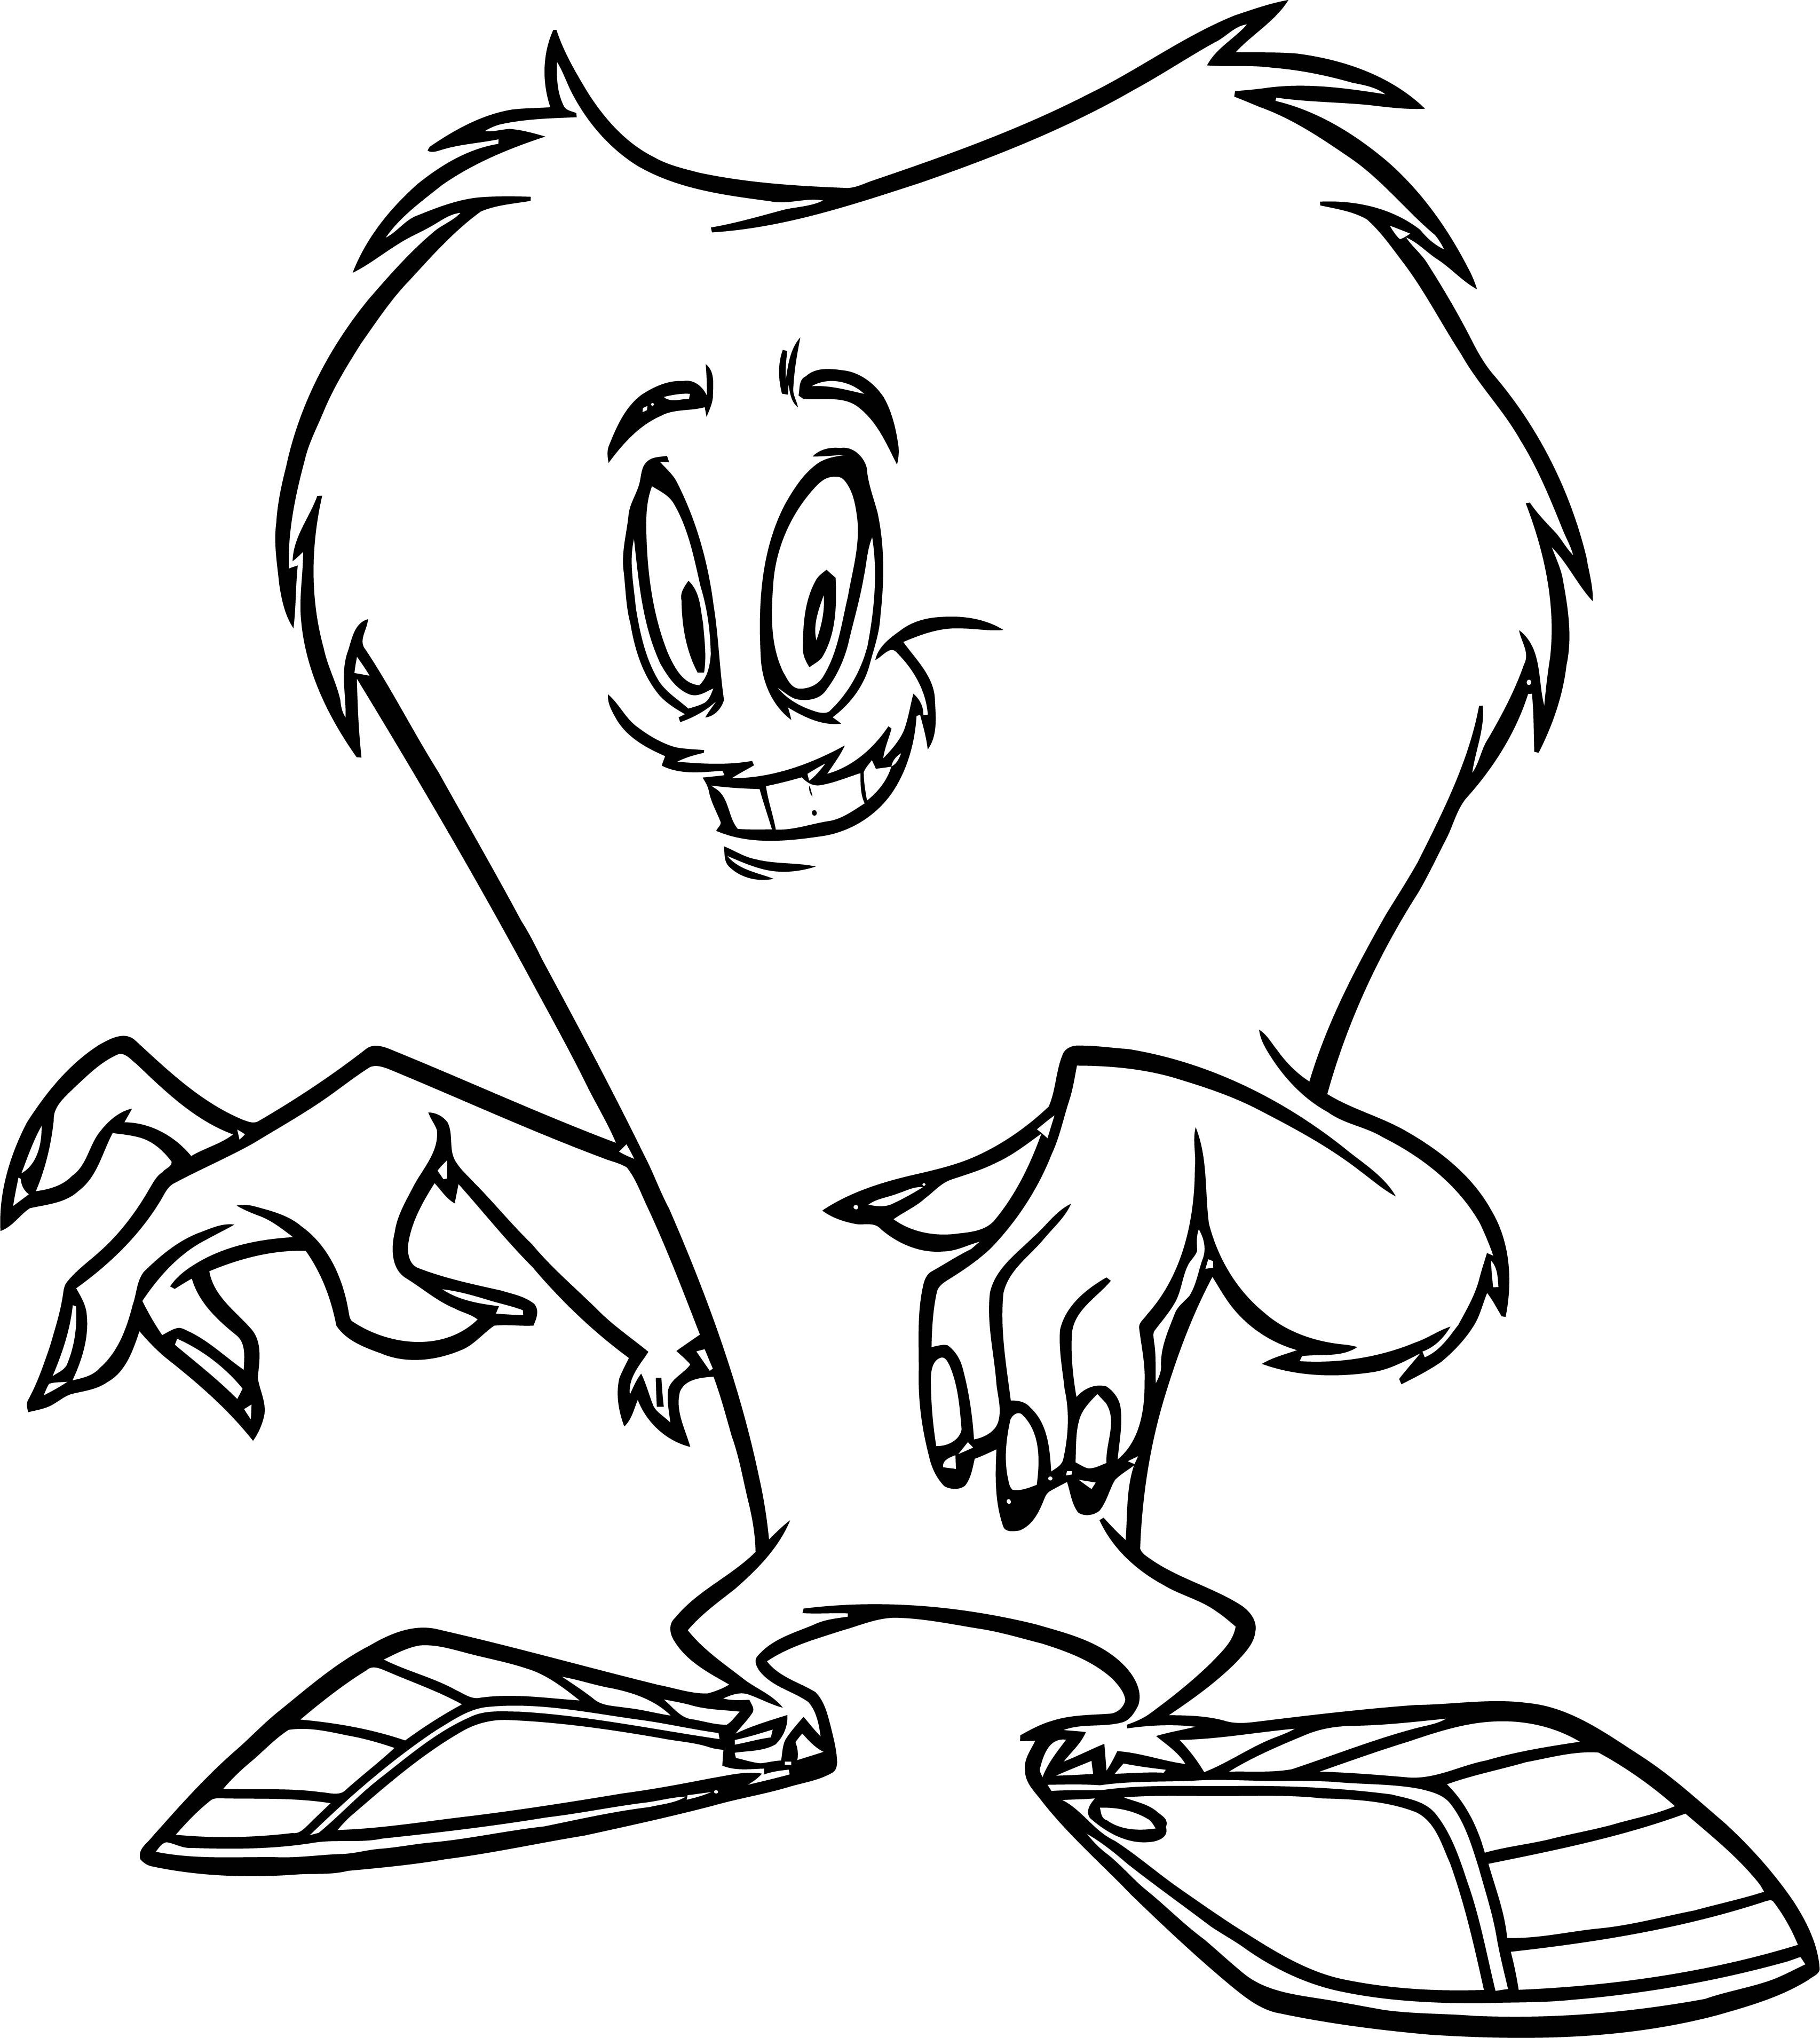 Looney Tunes Show Coloring Pages Looney Tunes Show Bunny Coloring Pages Coloring Pages